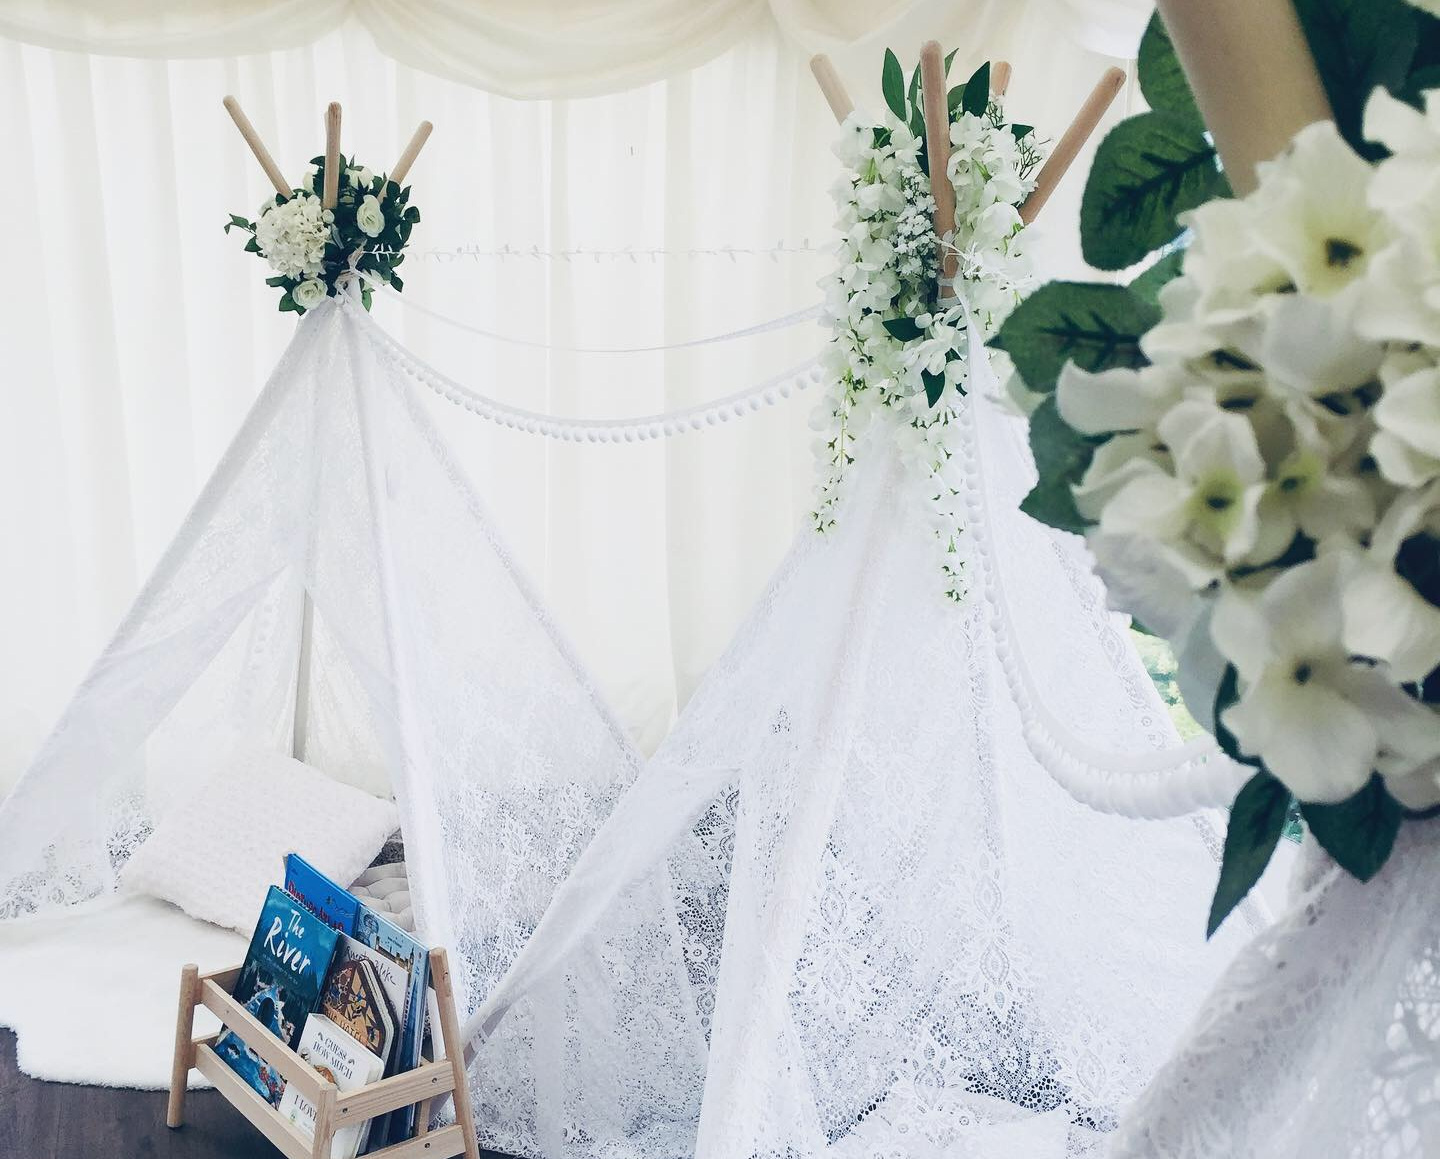 Luxury Lace… - Add a snug hideaway to give your little guests a beautiful place to play and rest. Our lace teepees are a stunning addition to any event and are beautifully decorated in neutral tones. Cosy cushions, plush rugs and soft throws even give them a space to take a little nap after a busy day celebrating!